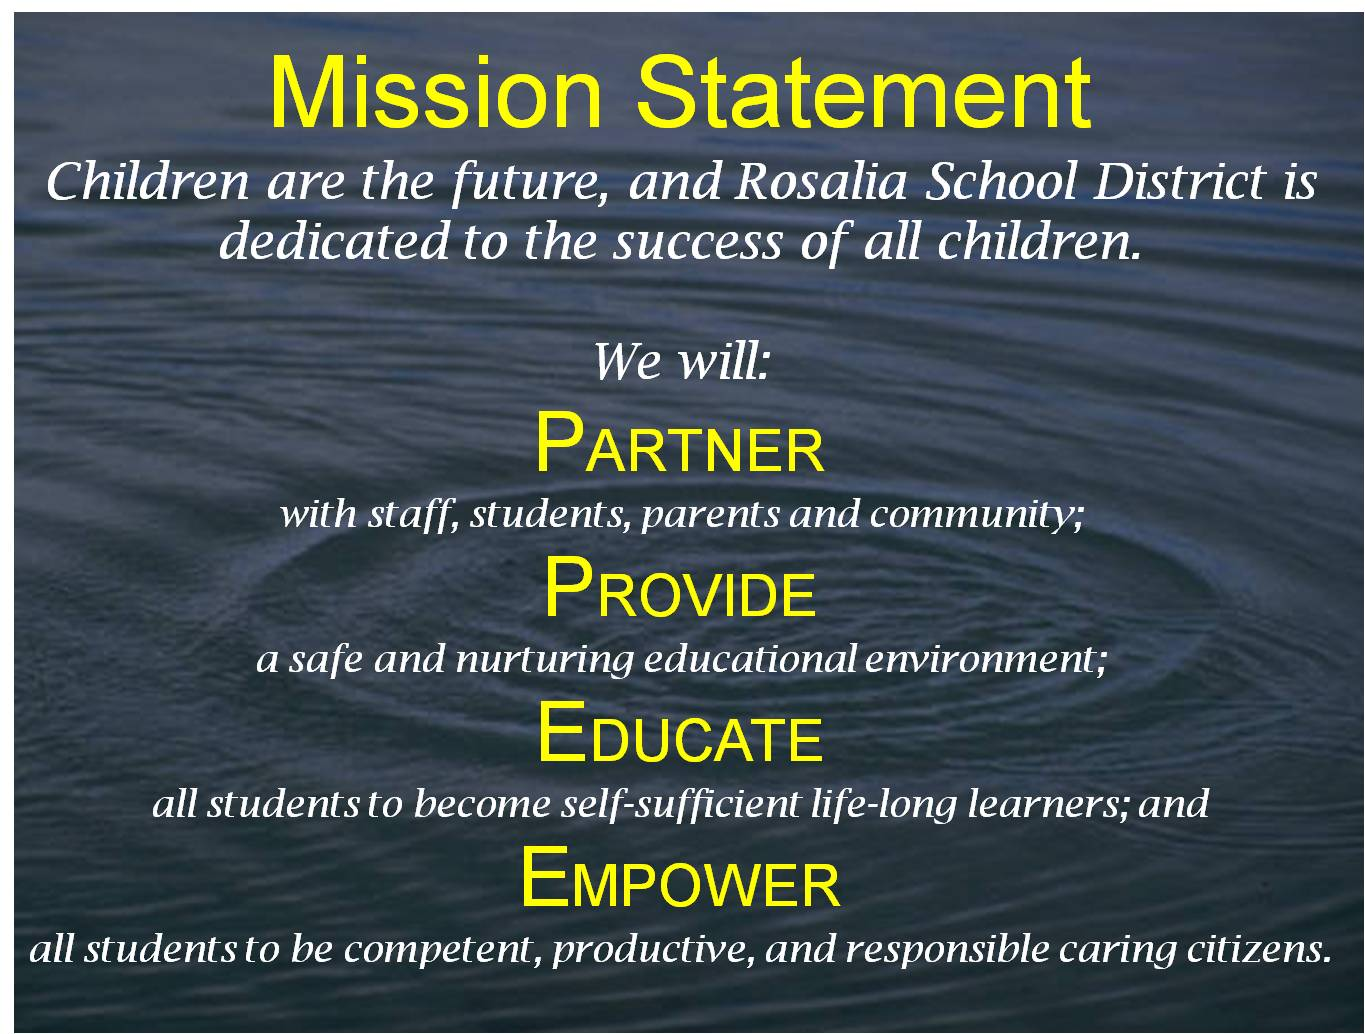 Preschool Teacher Mission Statement Examples